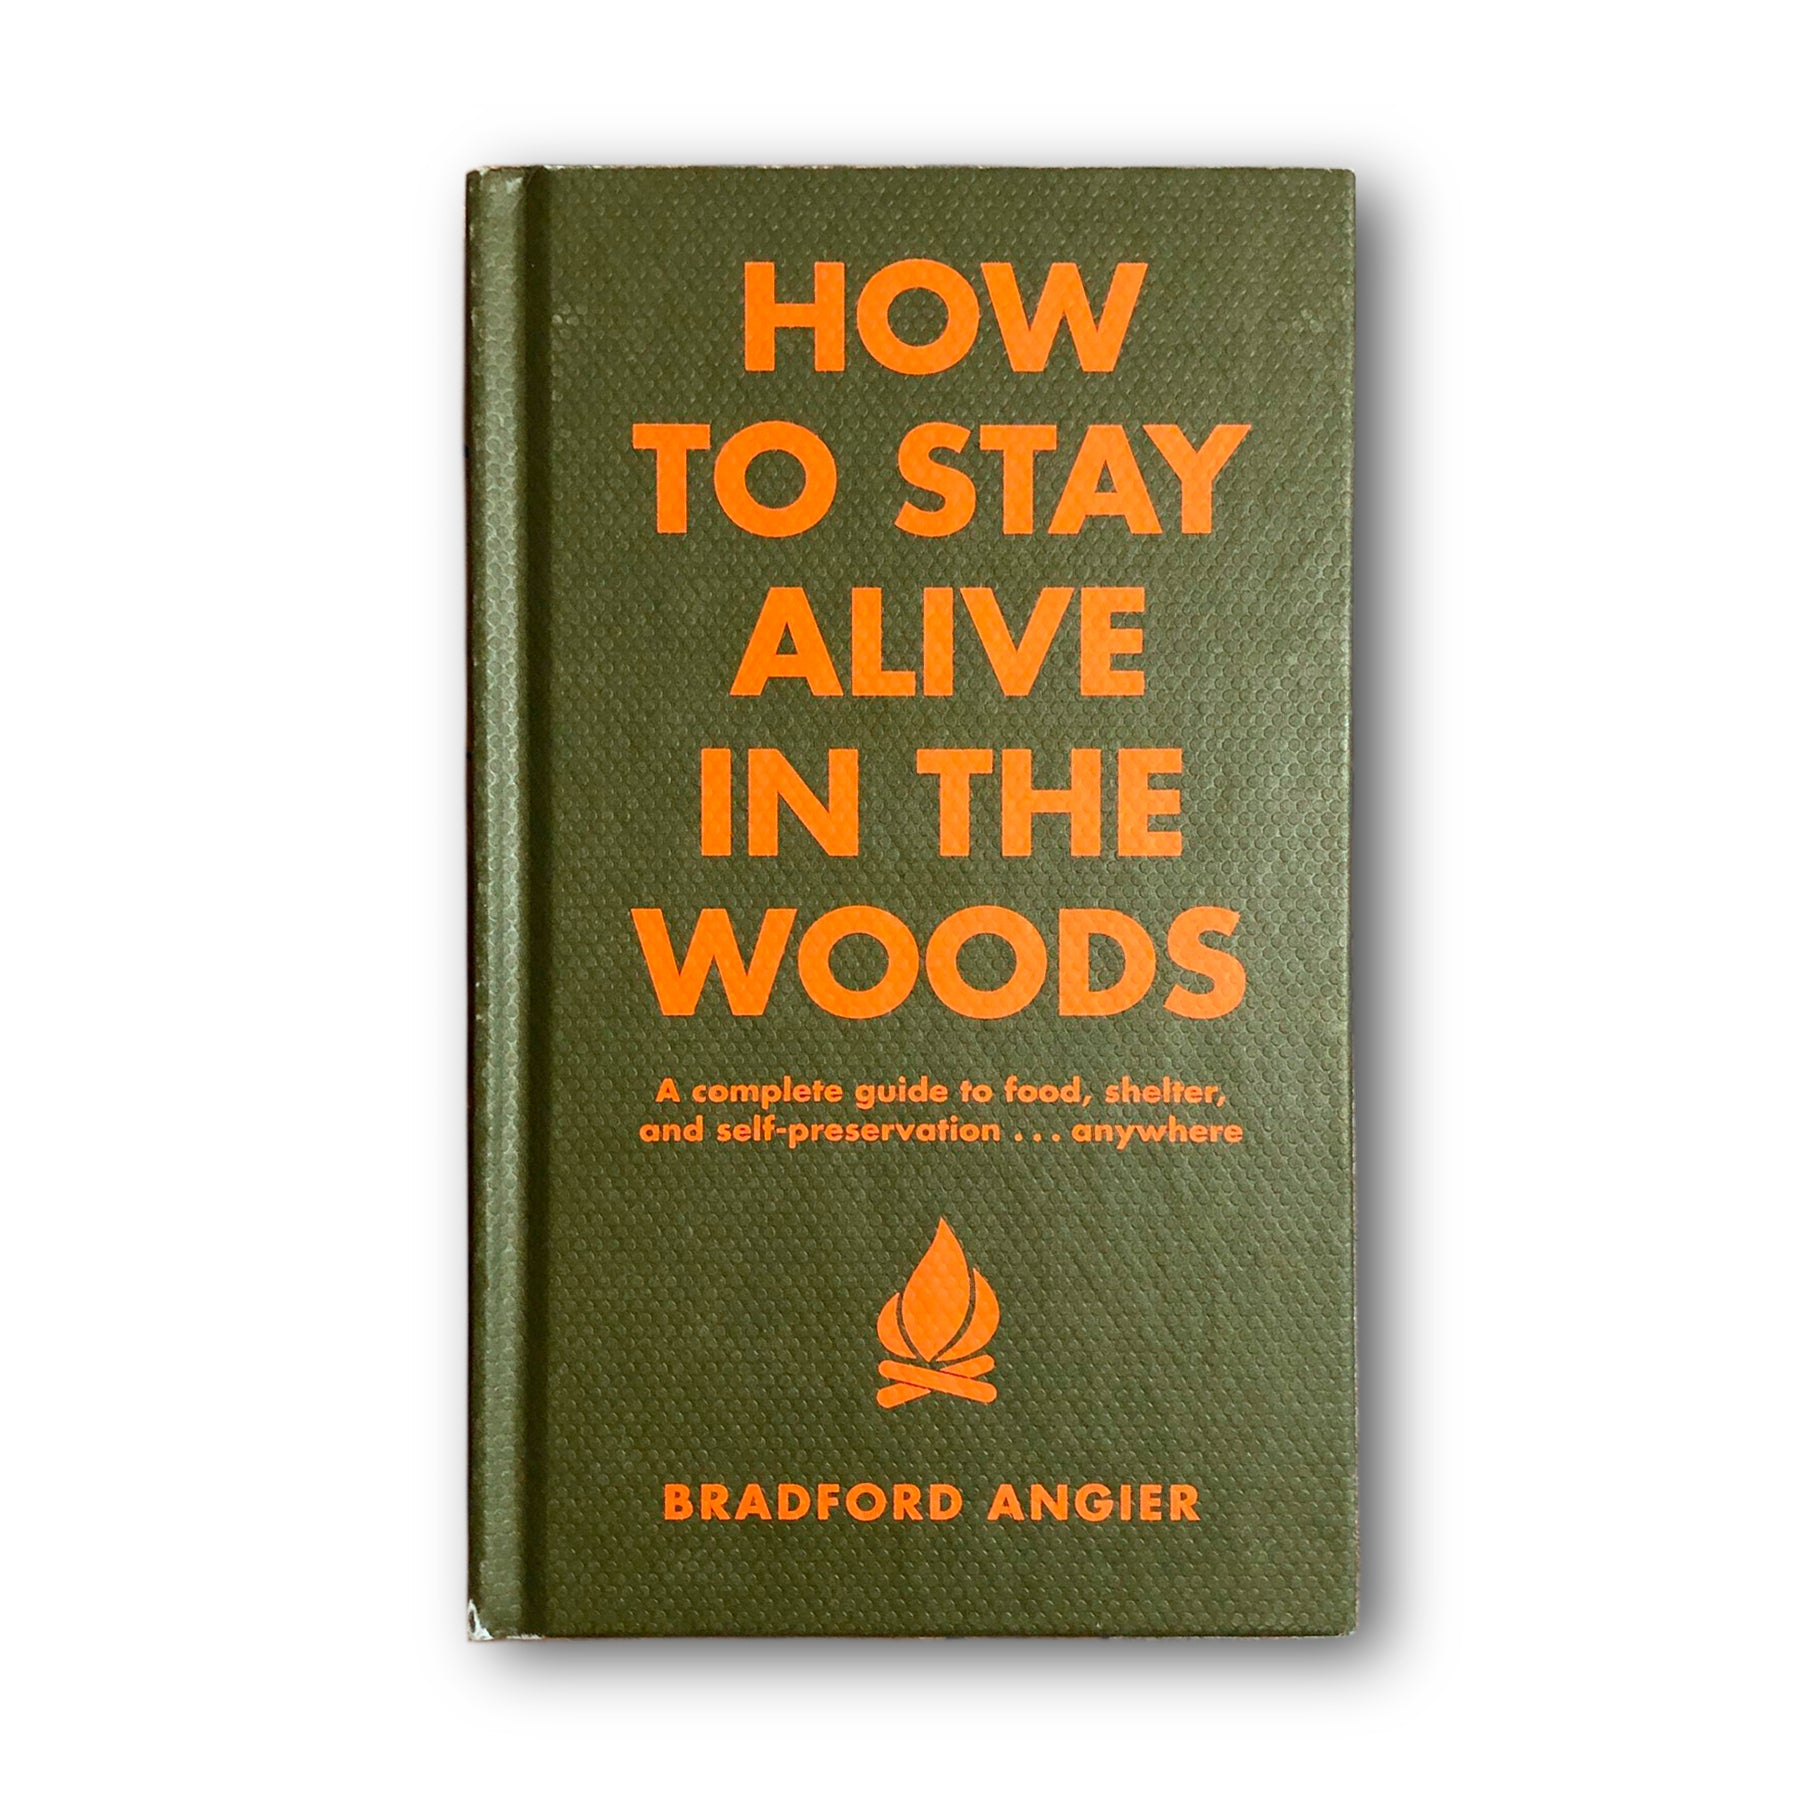 How to Stay Alive in the Woods Book